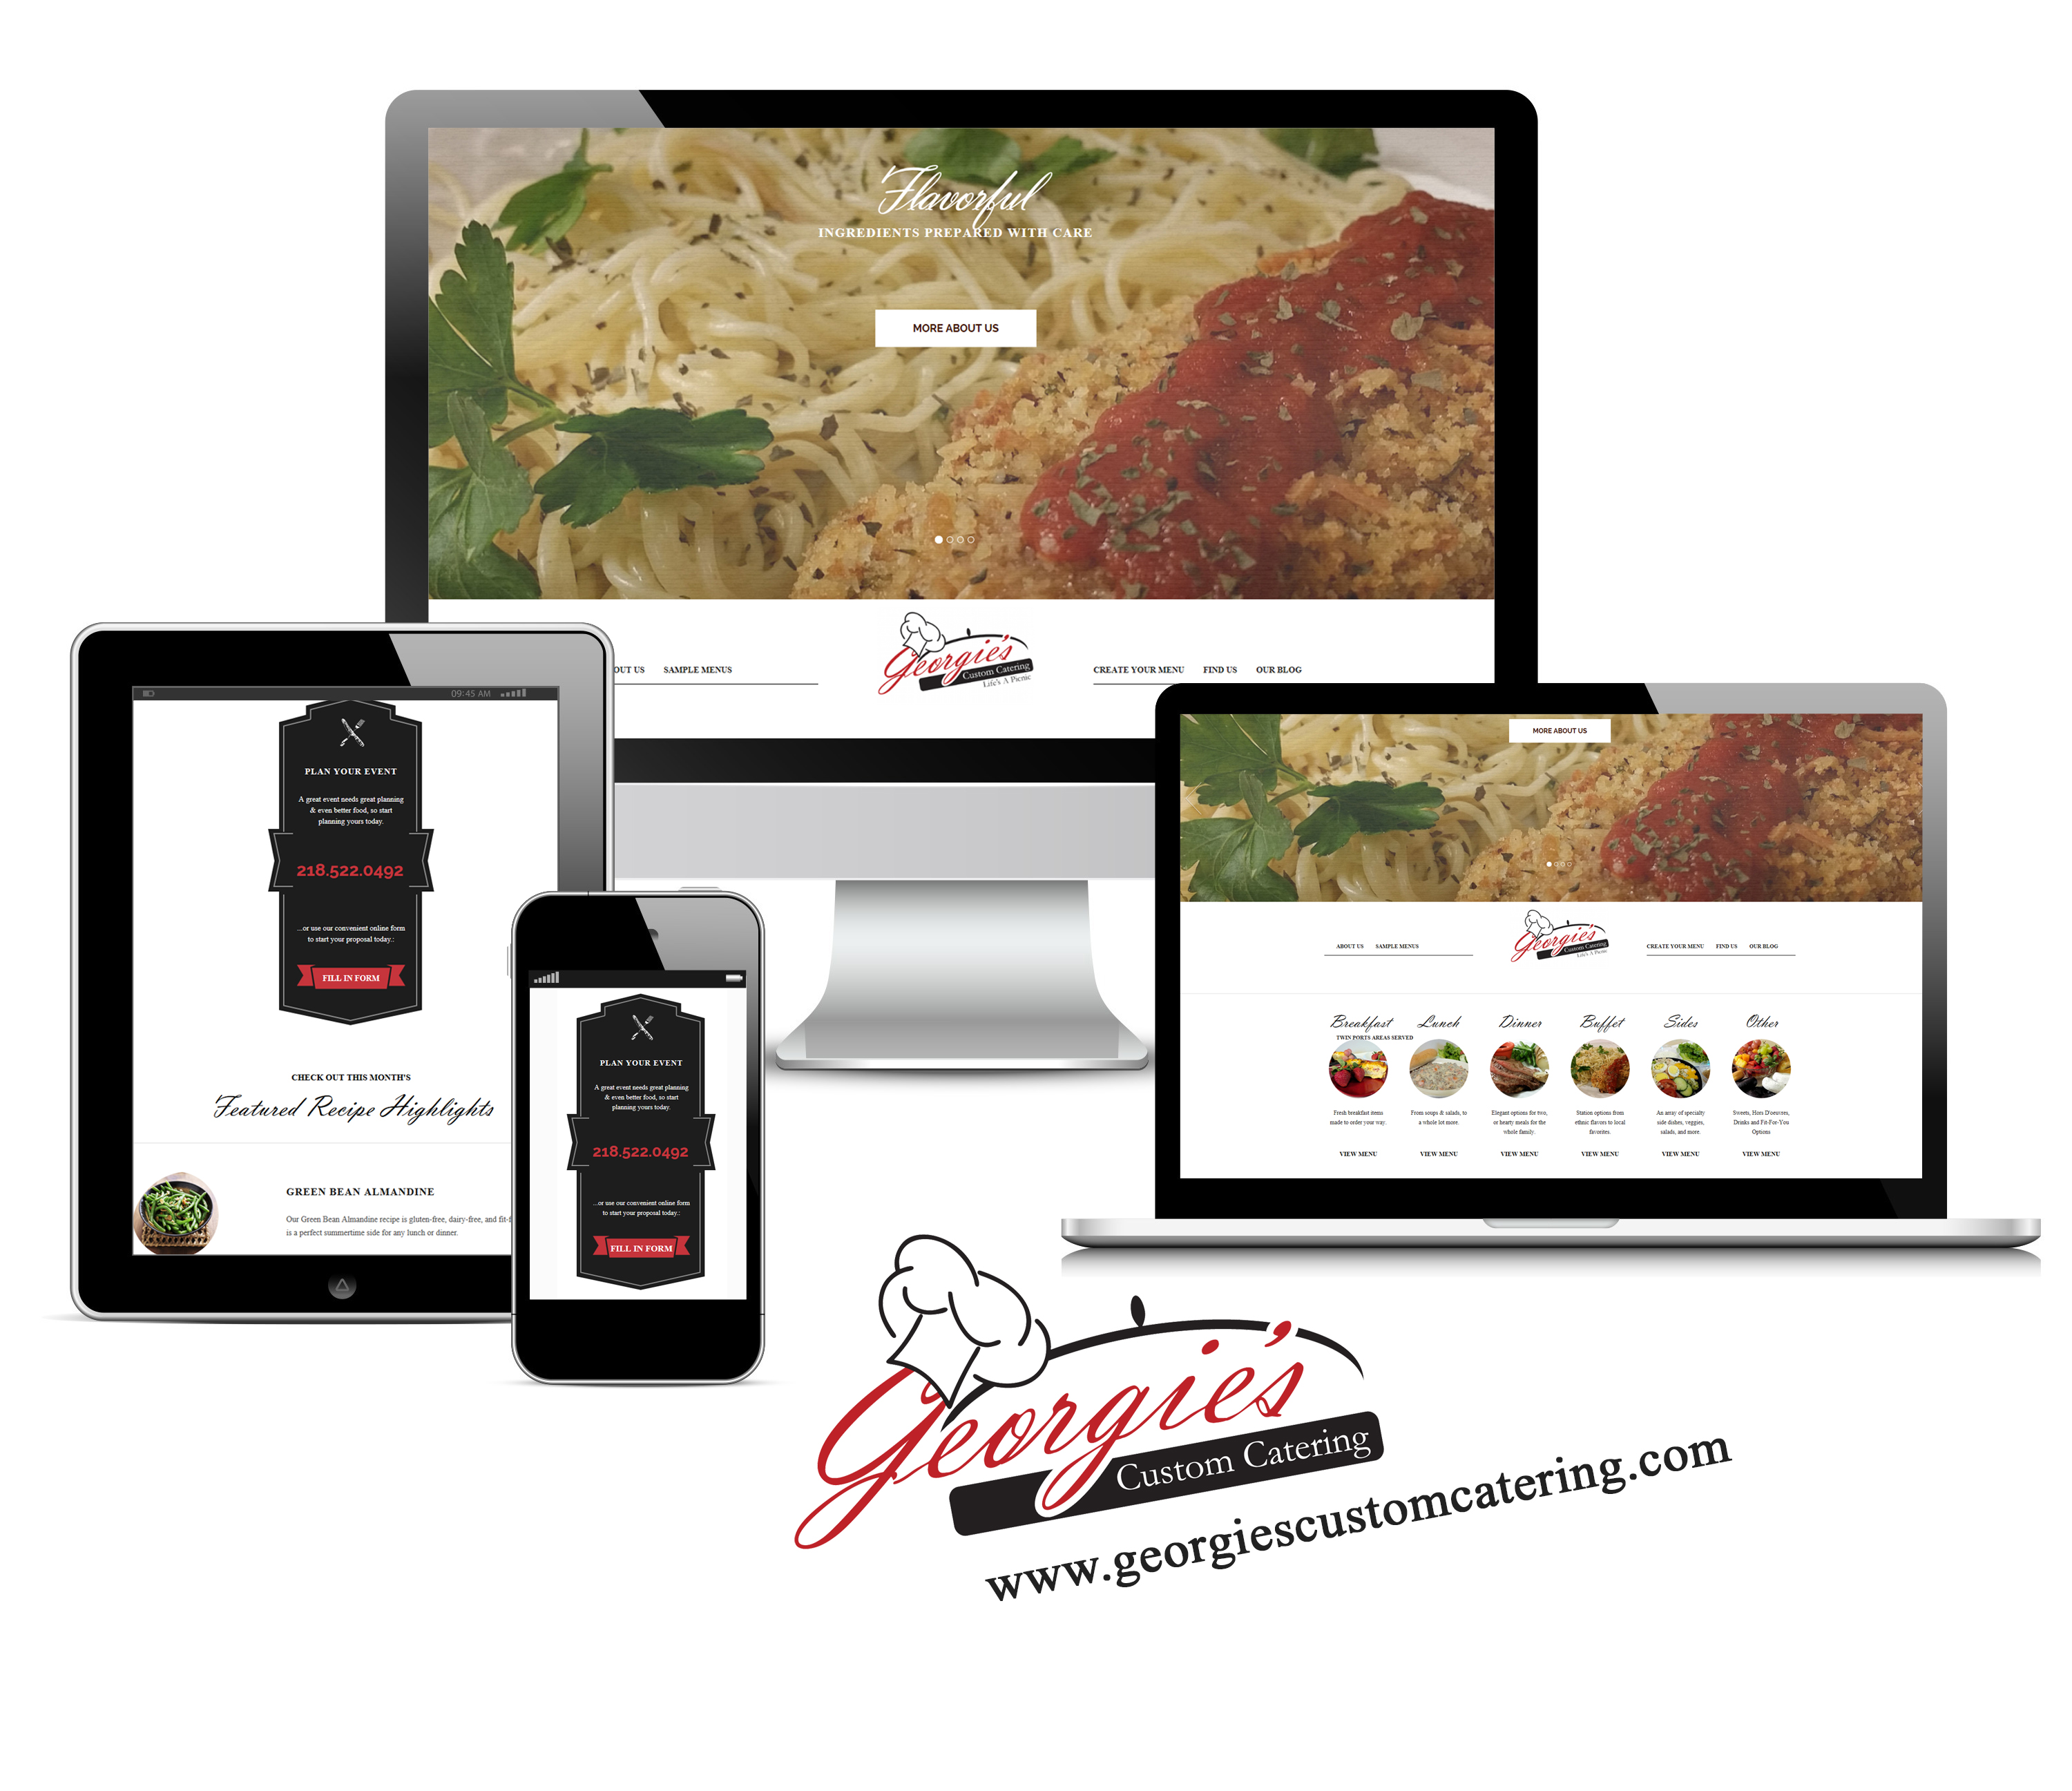 Georgies Custom Catering Design set by Back2Basics